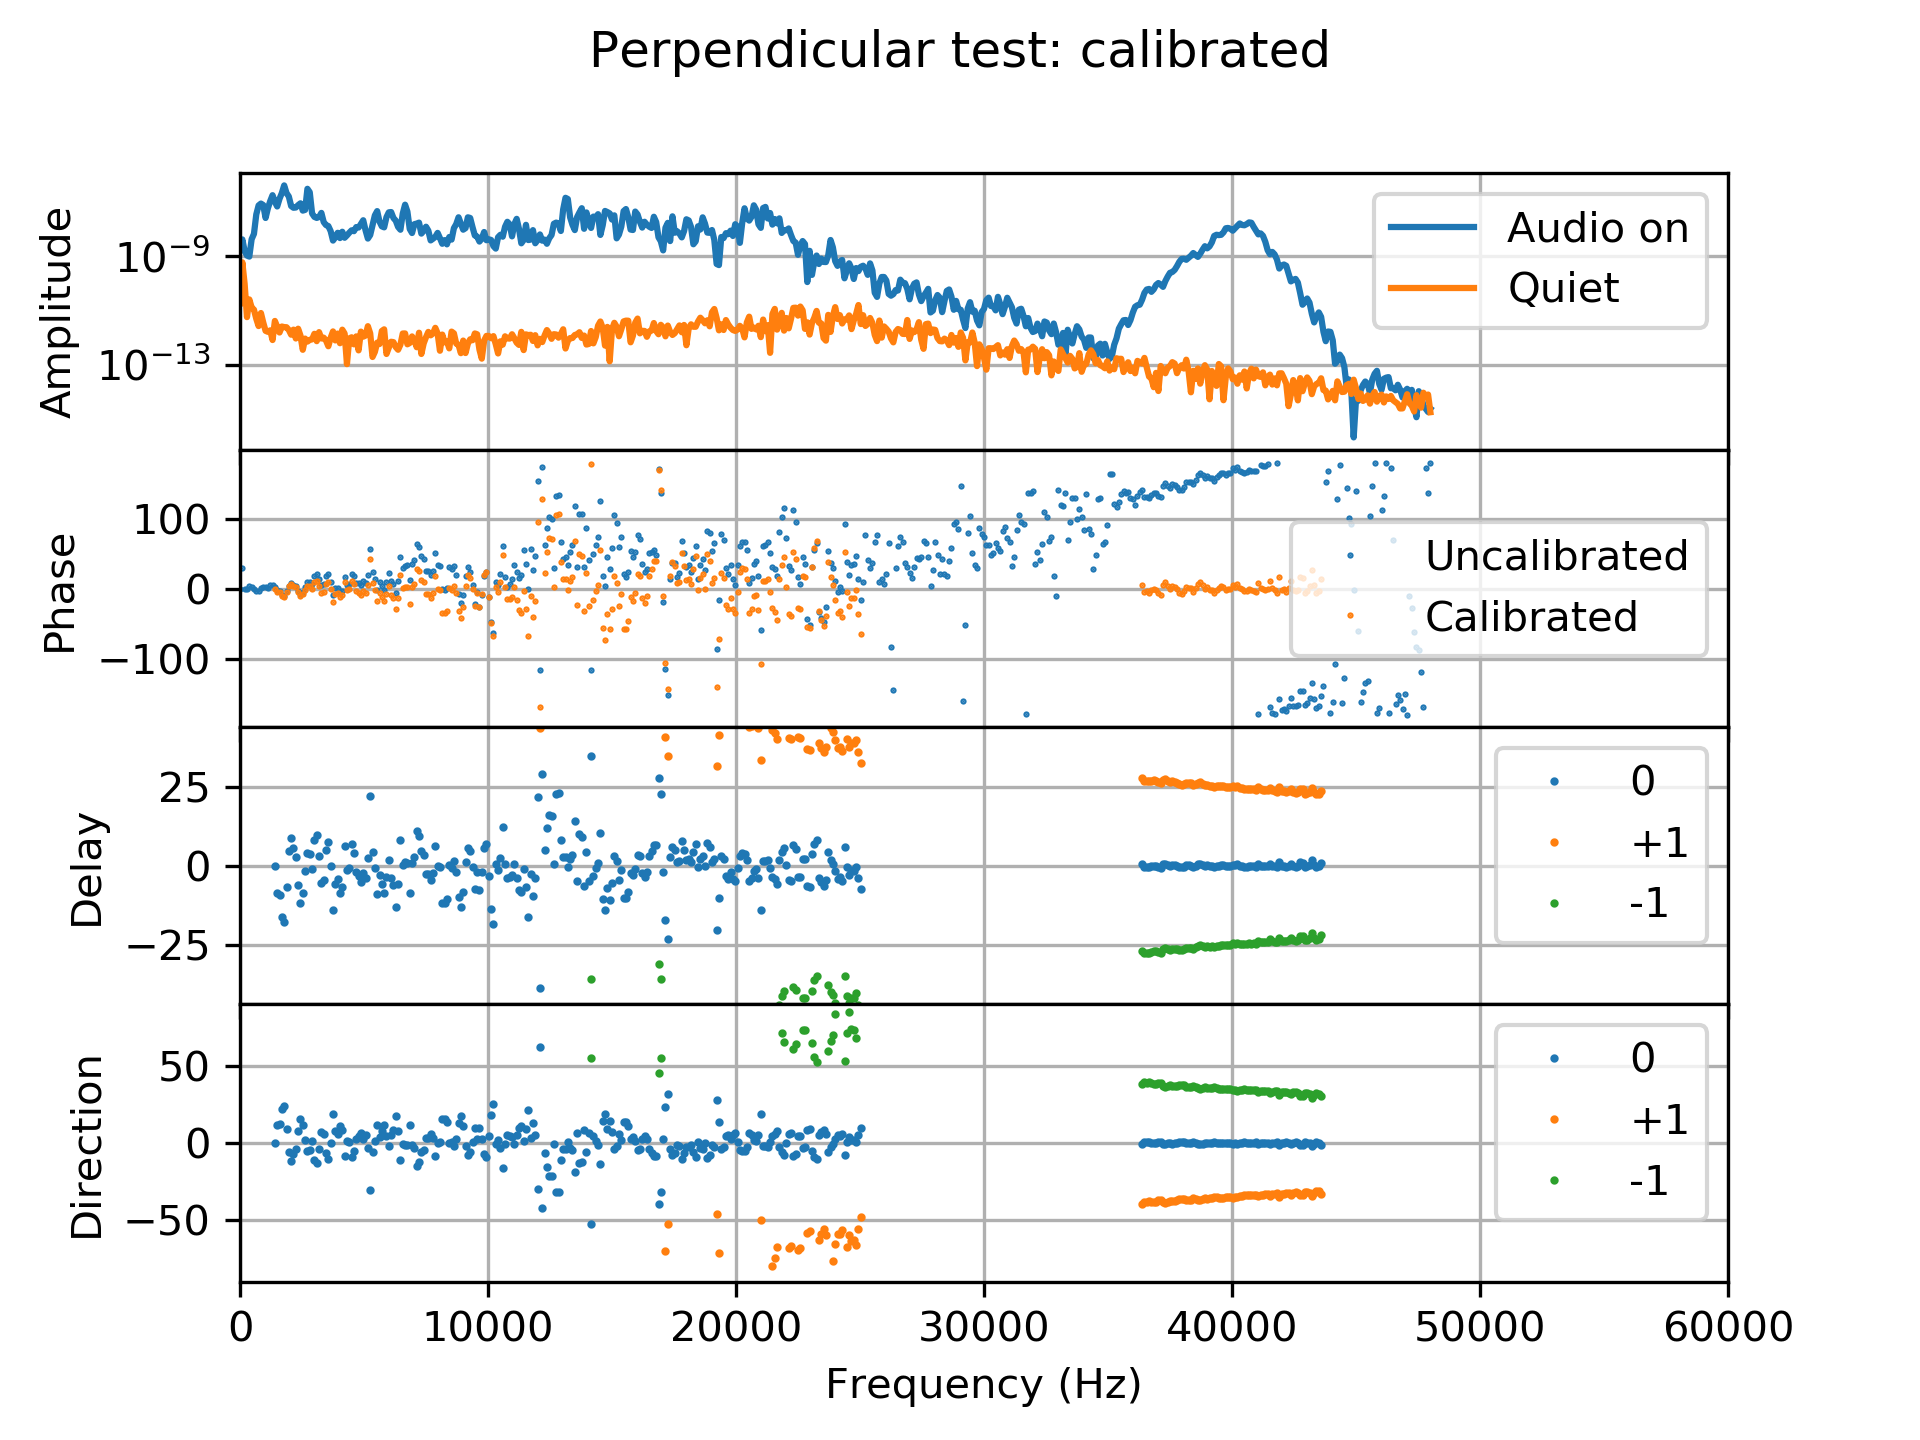 Perpendicular data calibrated with a solution obtained 10 seconds earlier. The second panel shows the uncalibrated (blue) and calibrated (orange) phases. Calibrated delays and directions are shown in the lower two panels.